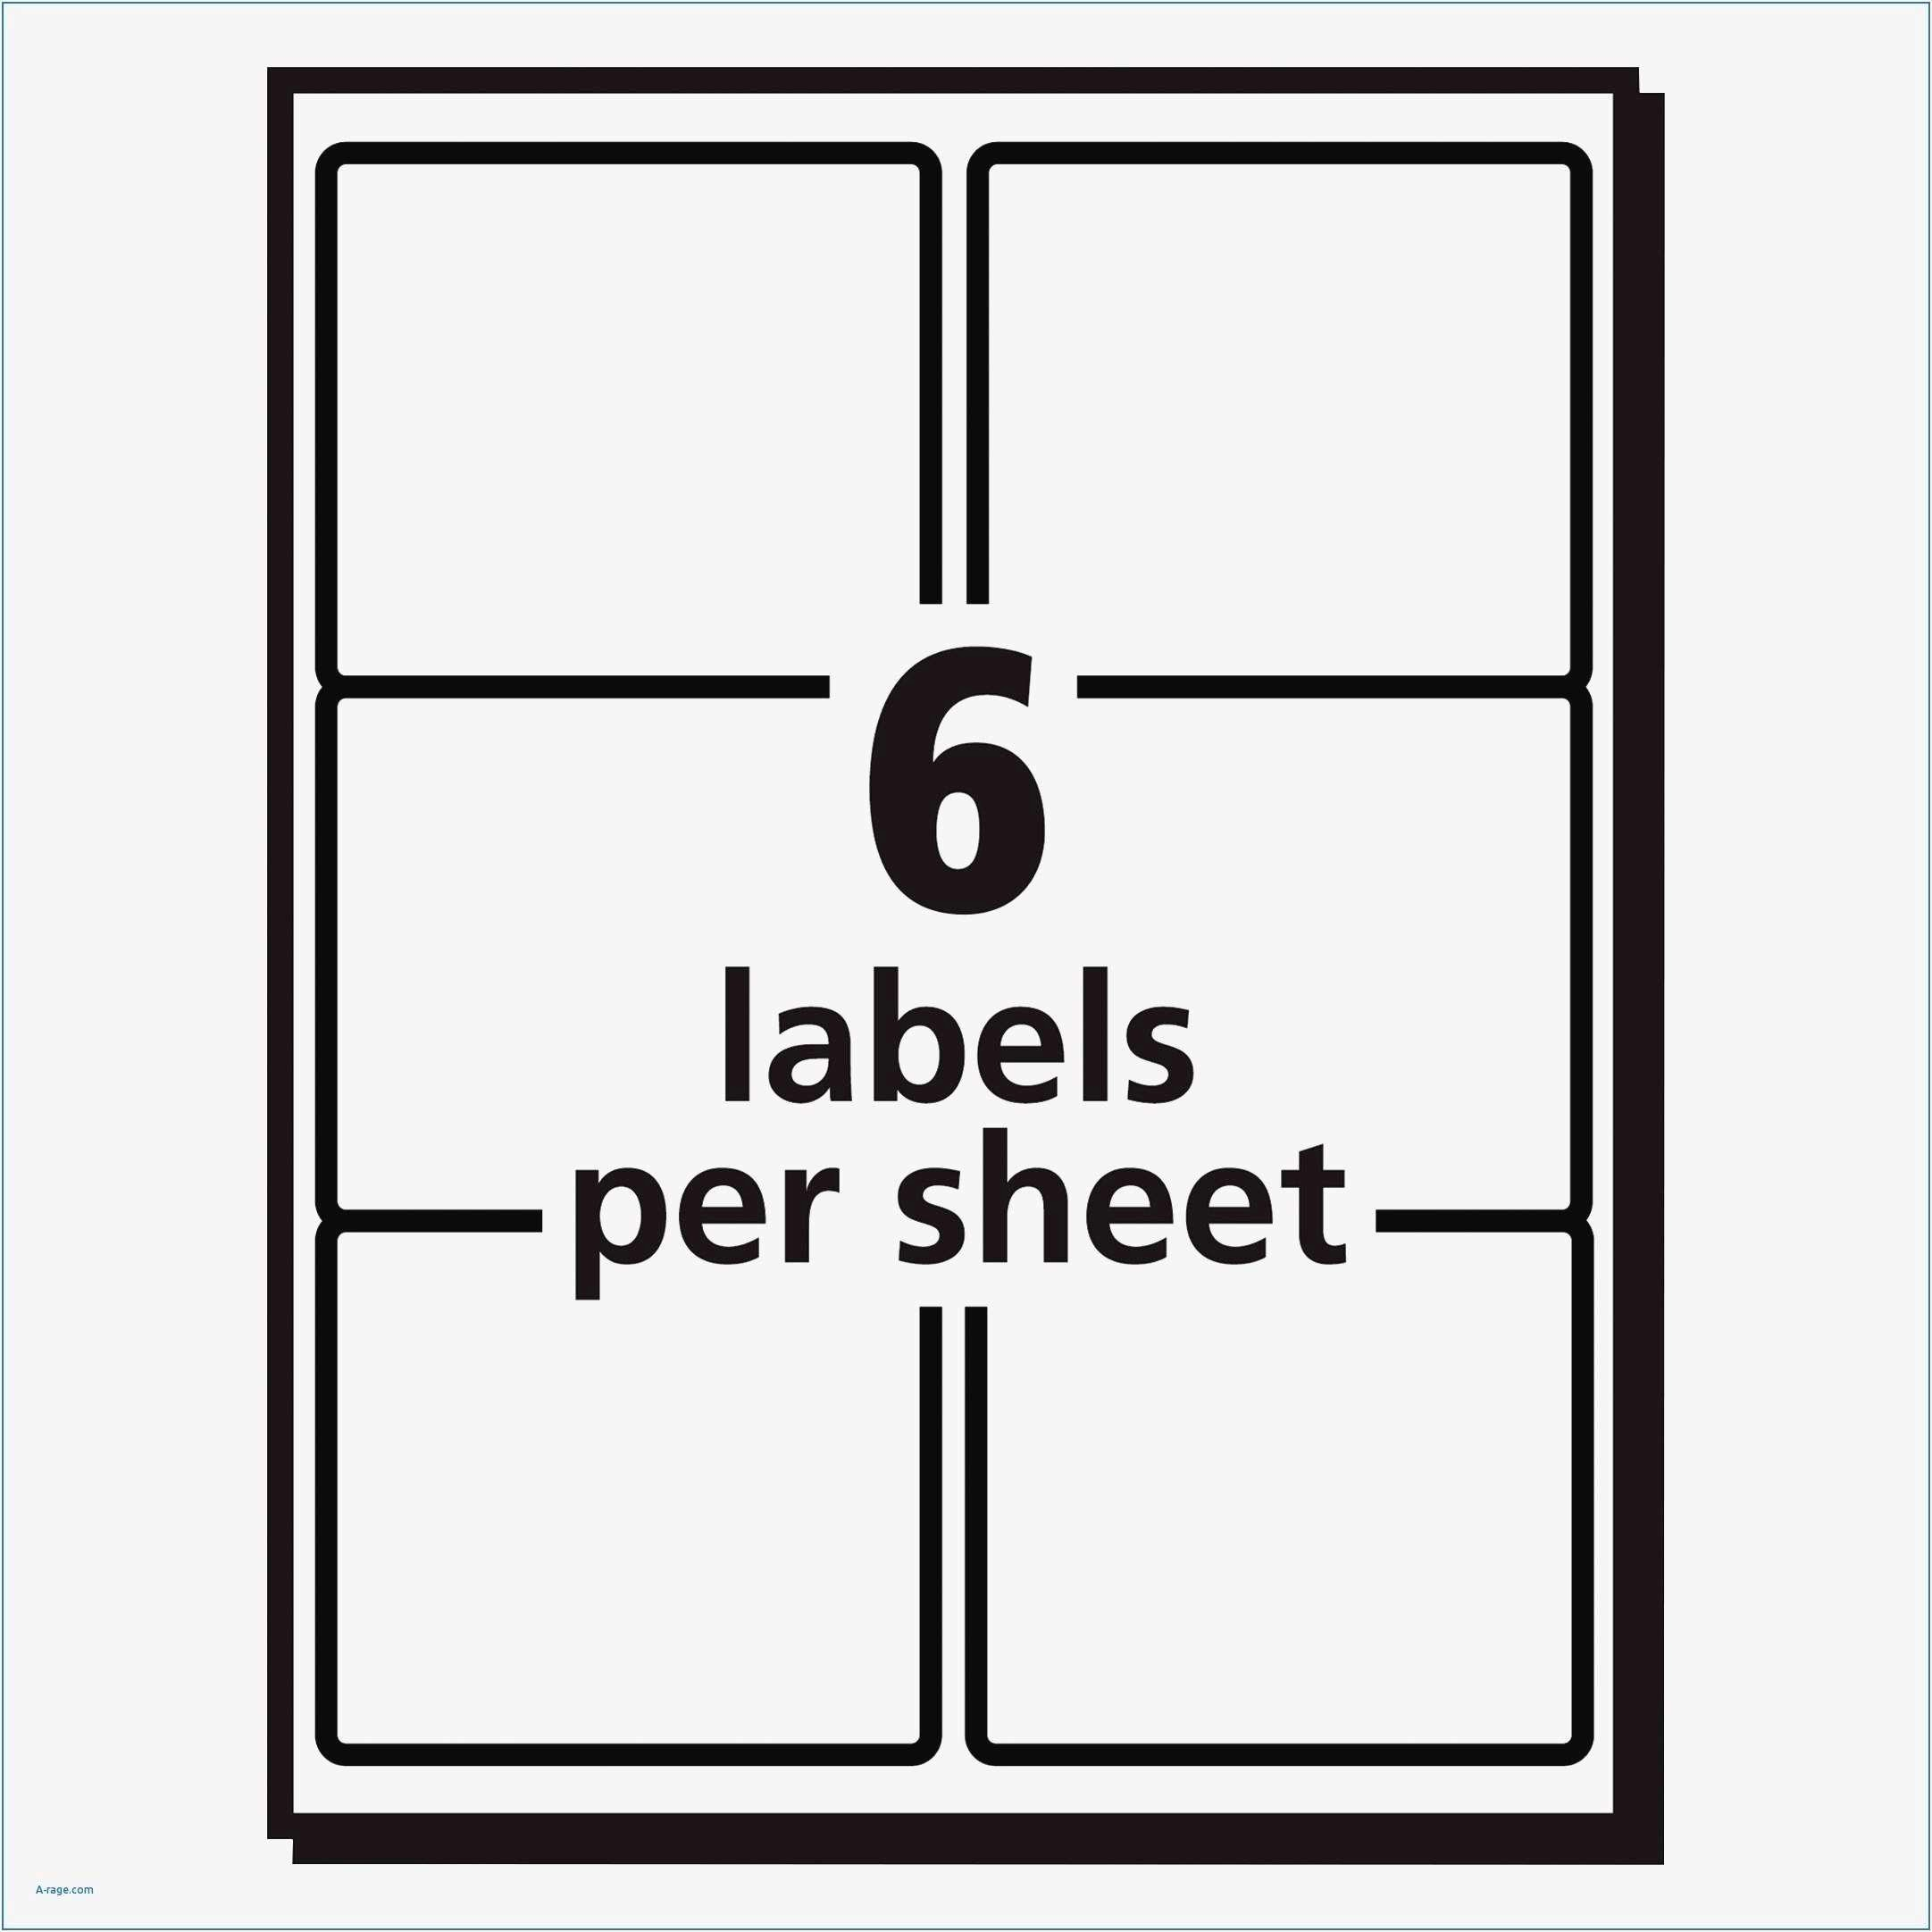 Avery Labels Name Tags Templates Lovely Awesome Avery 3x4 Name Tag Template